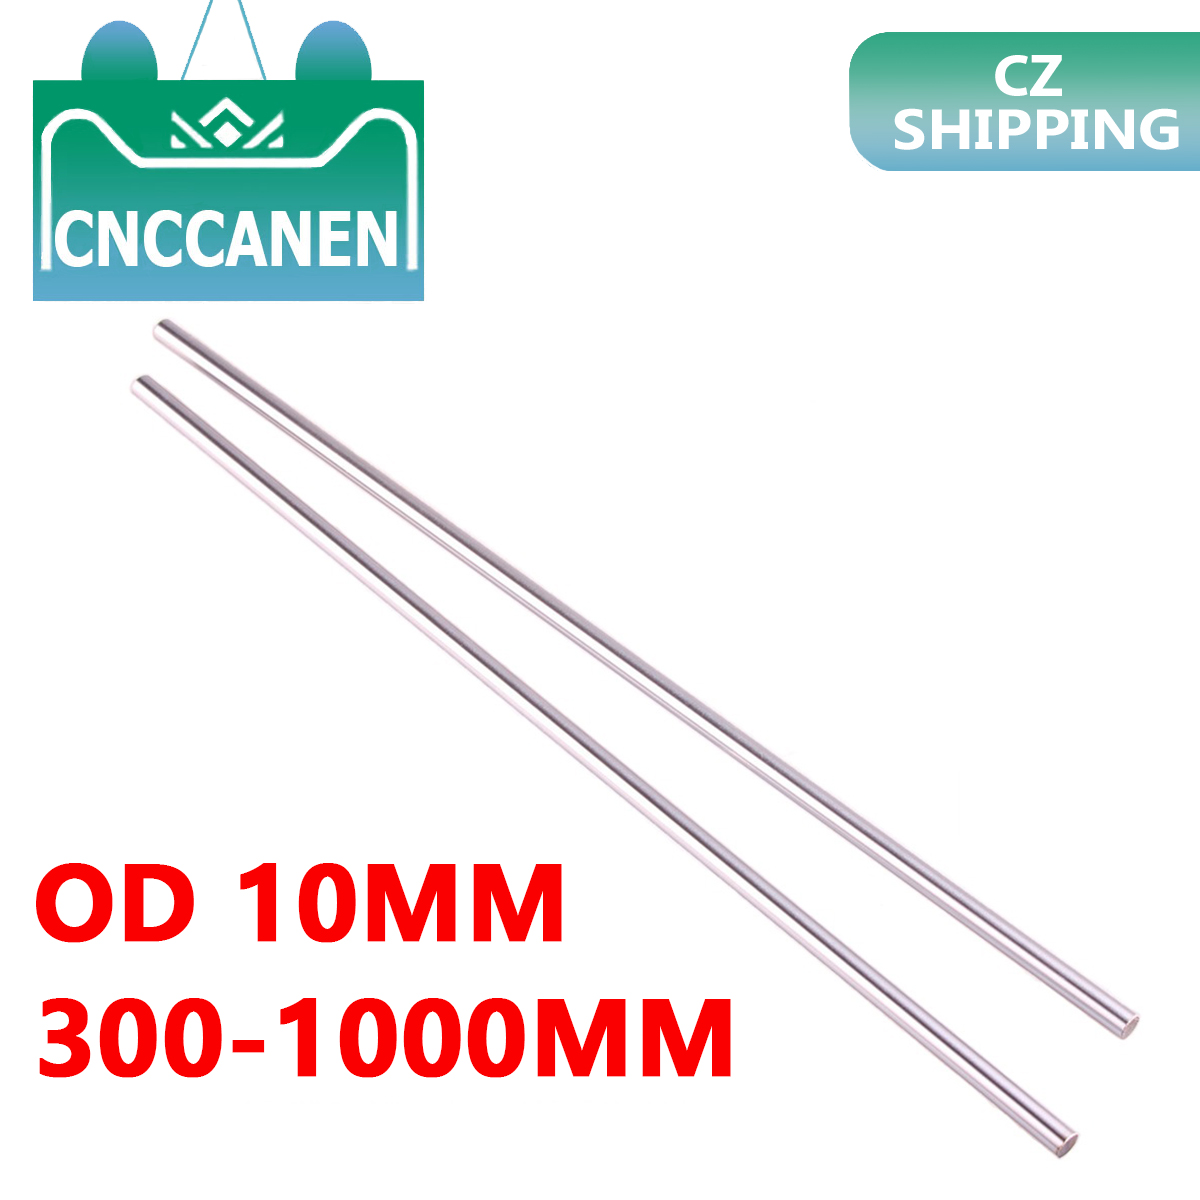 8mm O.D Hardened Rod Pre-cut length 1000mm 3D printer CNC